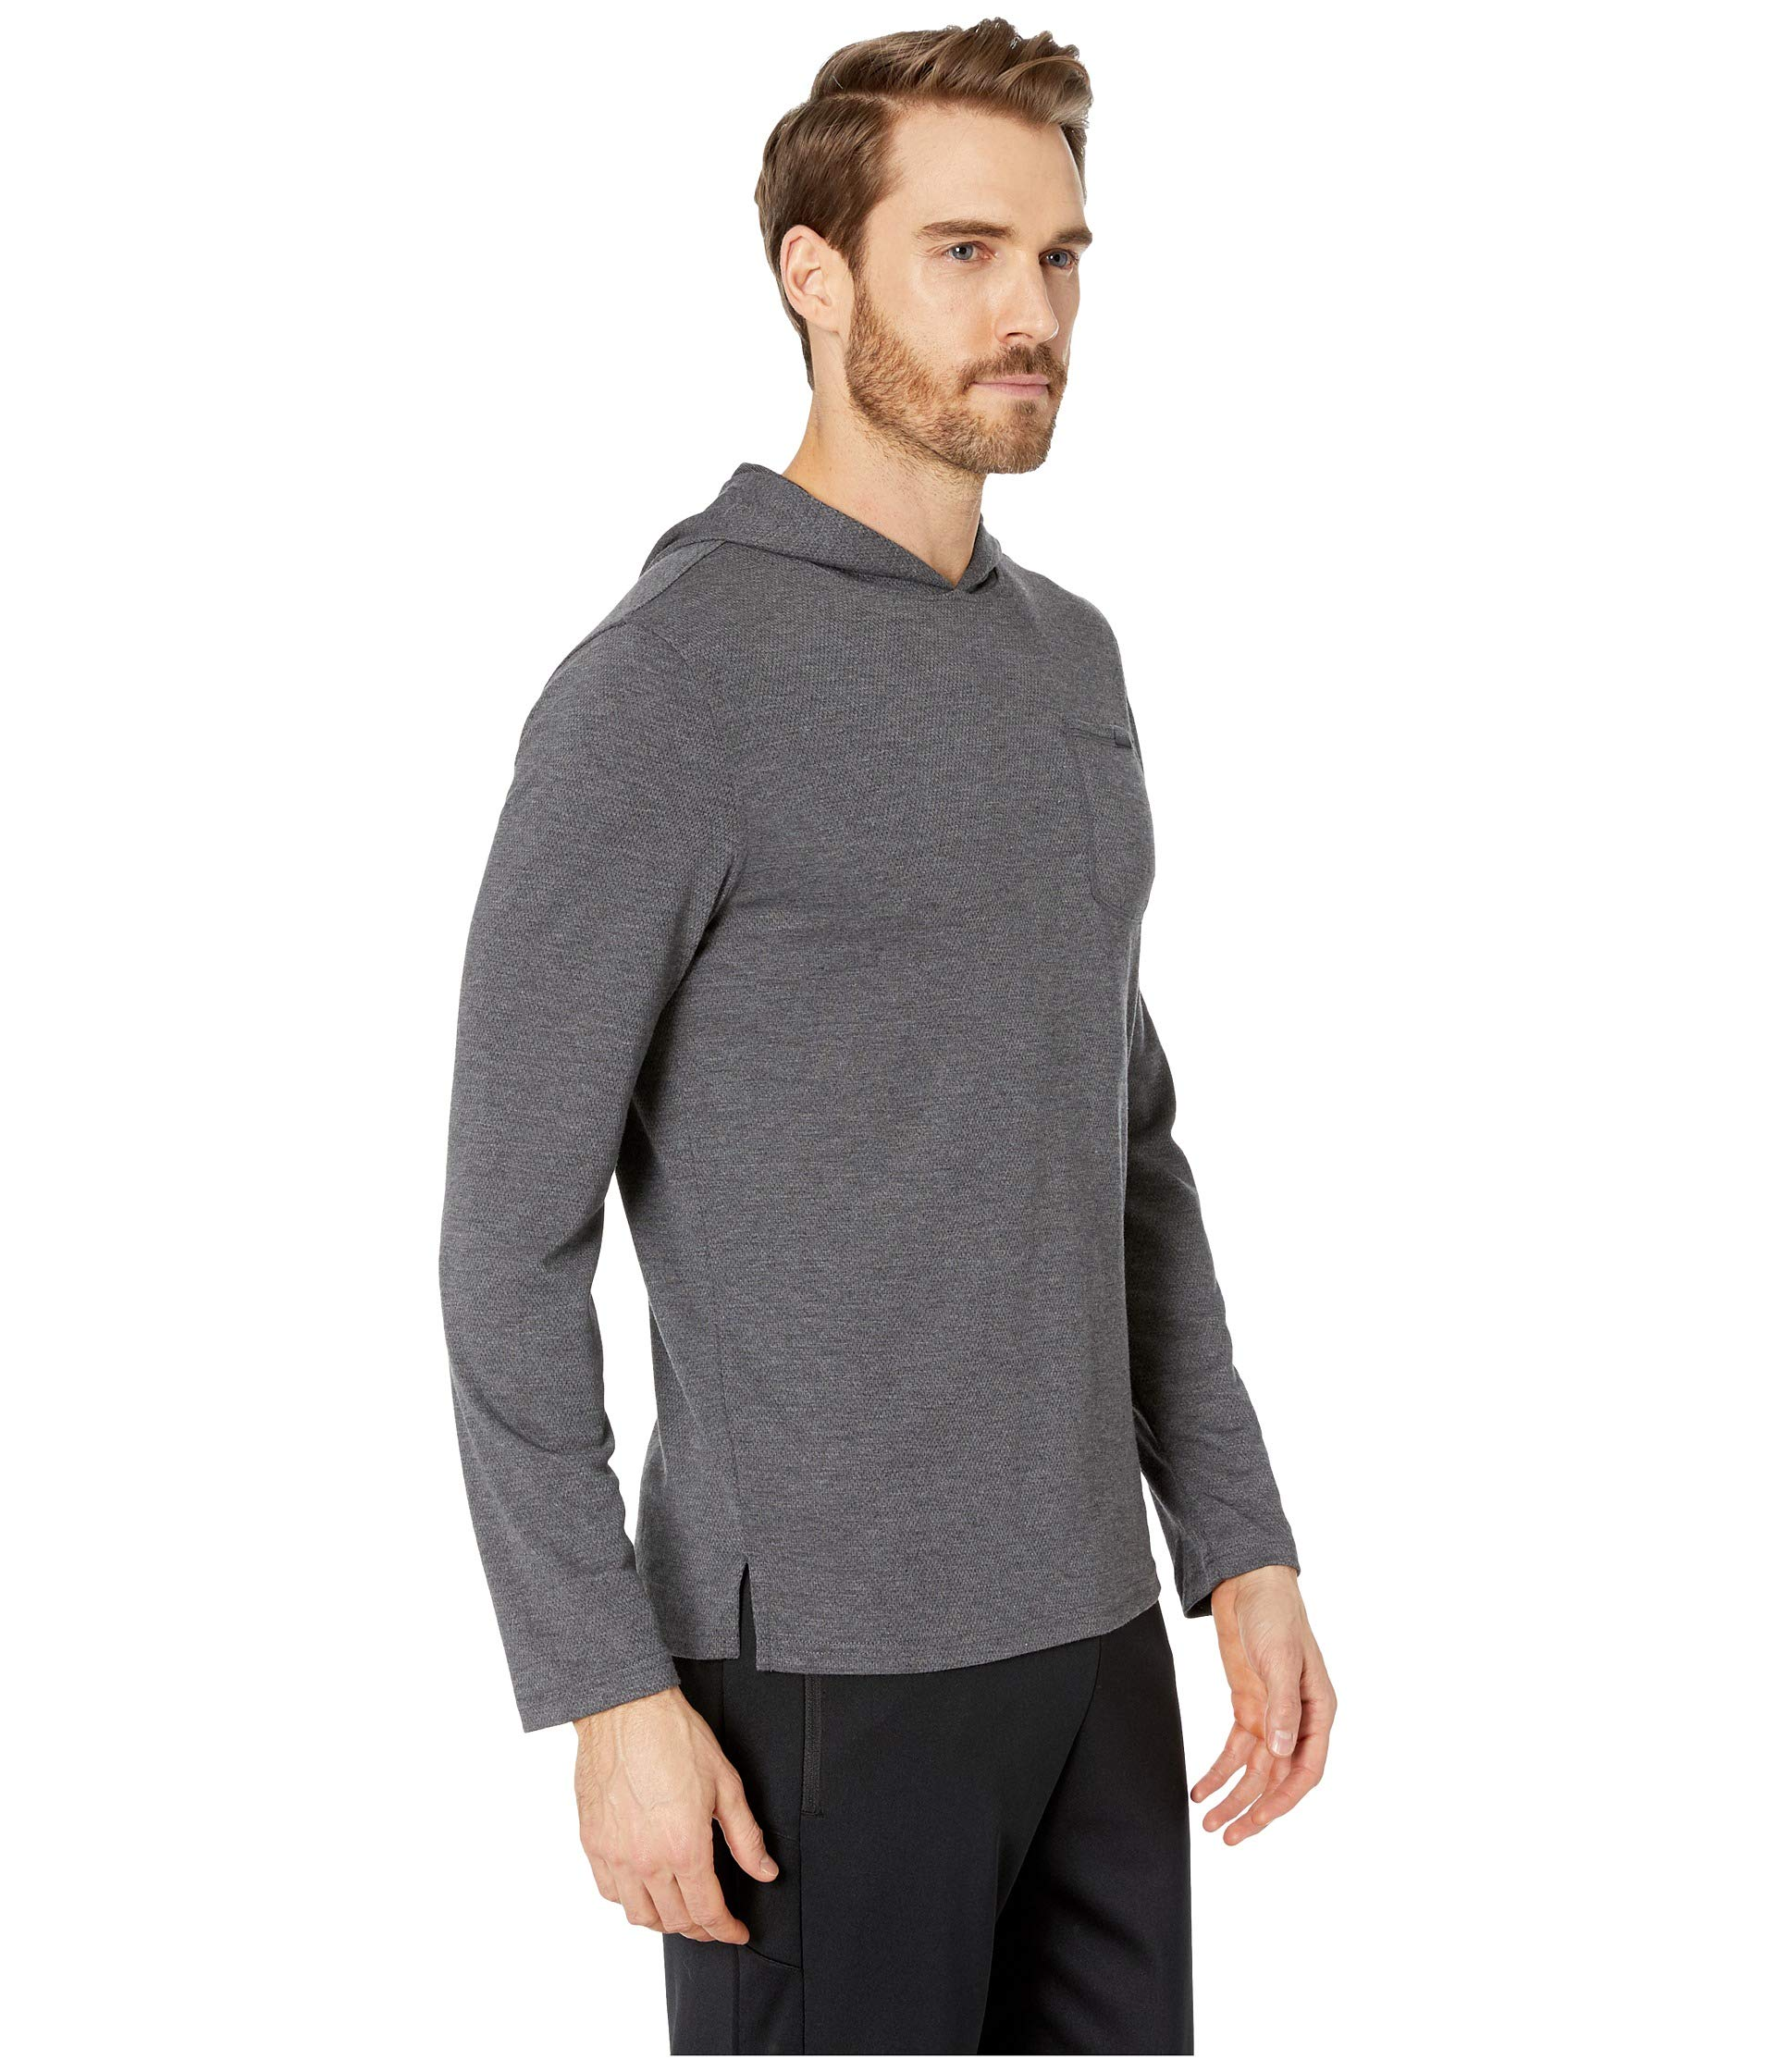 Charcoal Diffusion Charcoal Skechers Skechers Diffusion Pullover Pullover wOvR1qdw5